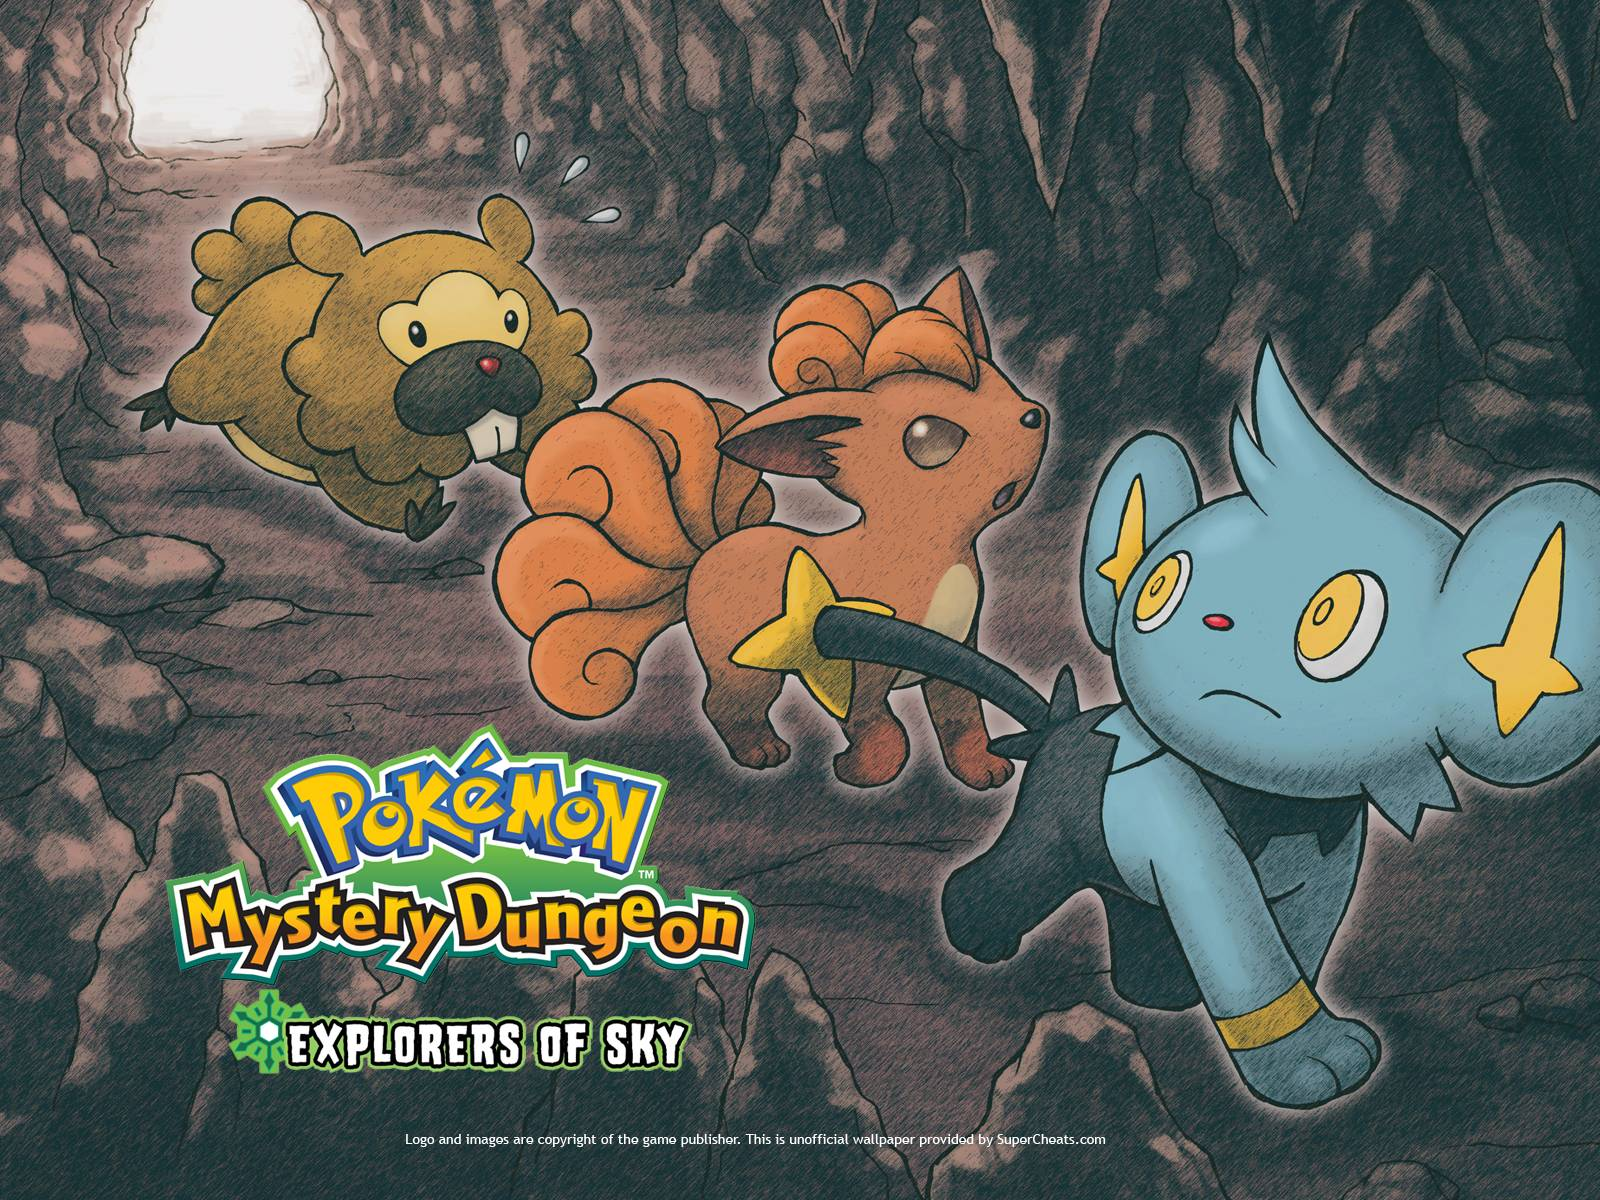 Pokemon Mystery Dungeon Wallpapers Wallpaper Cave